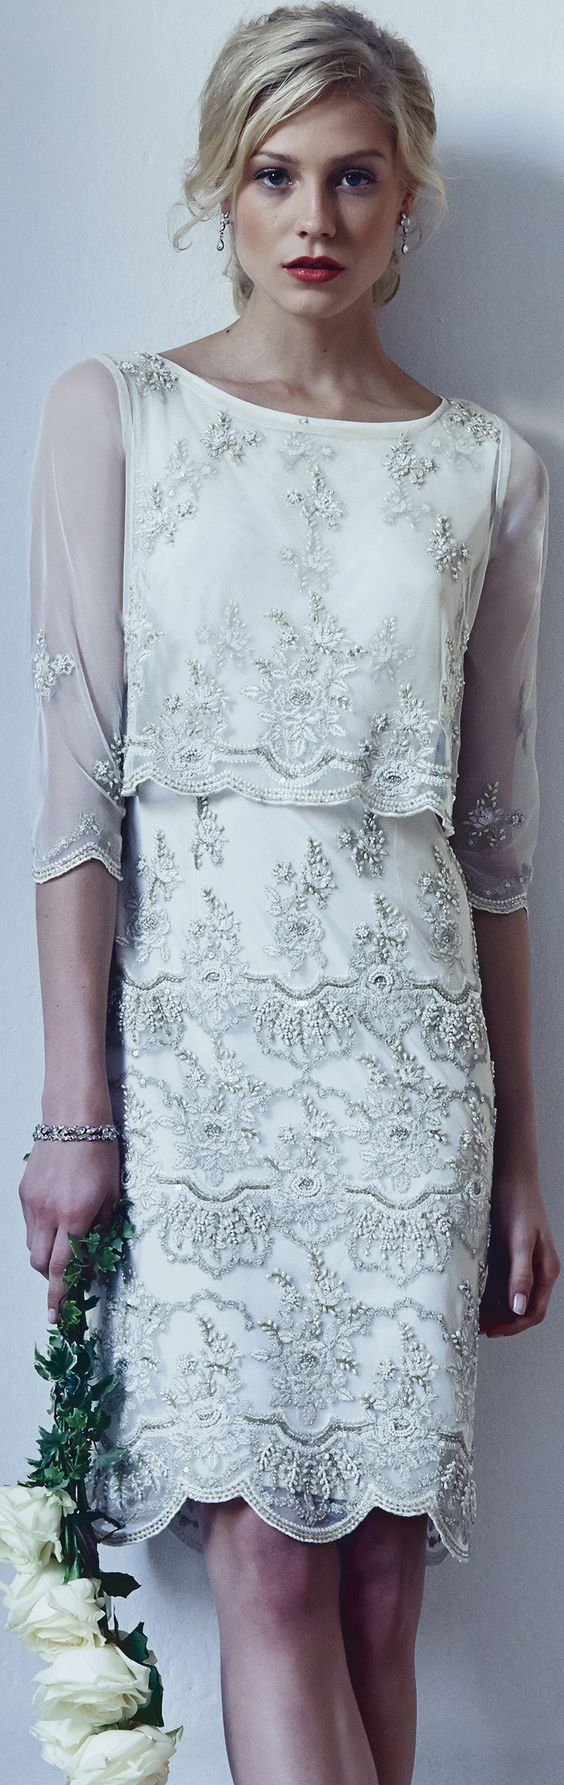 Pin by tuy up on autre pinterest